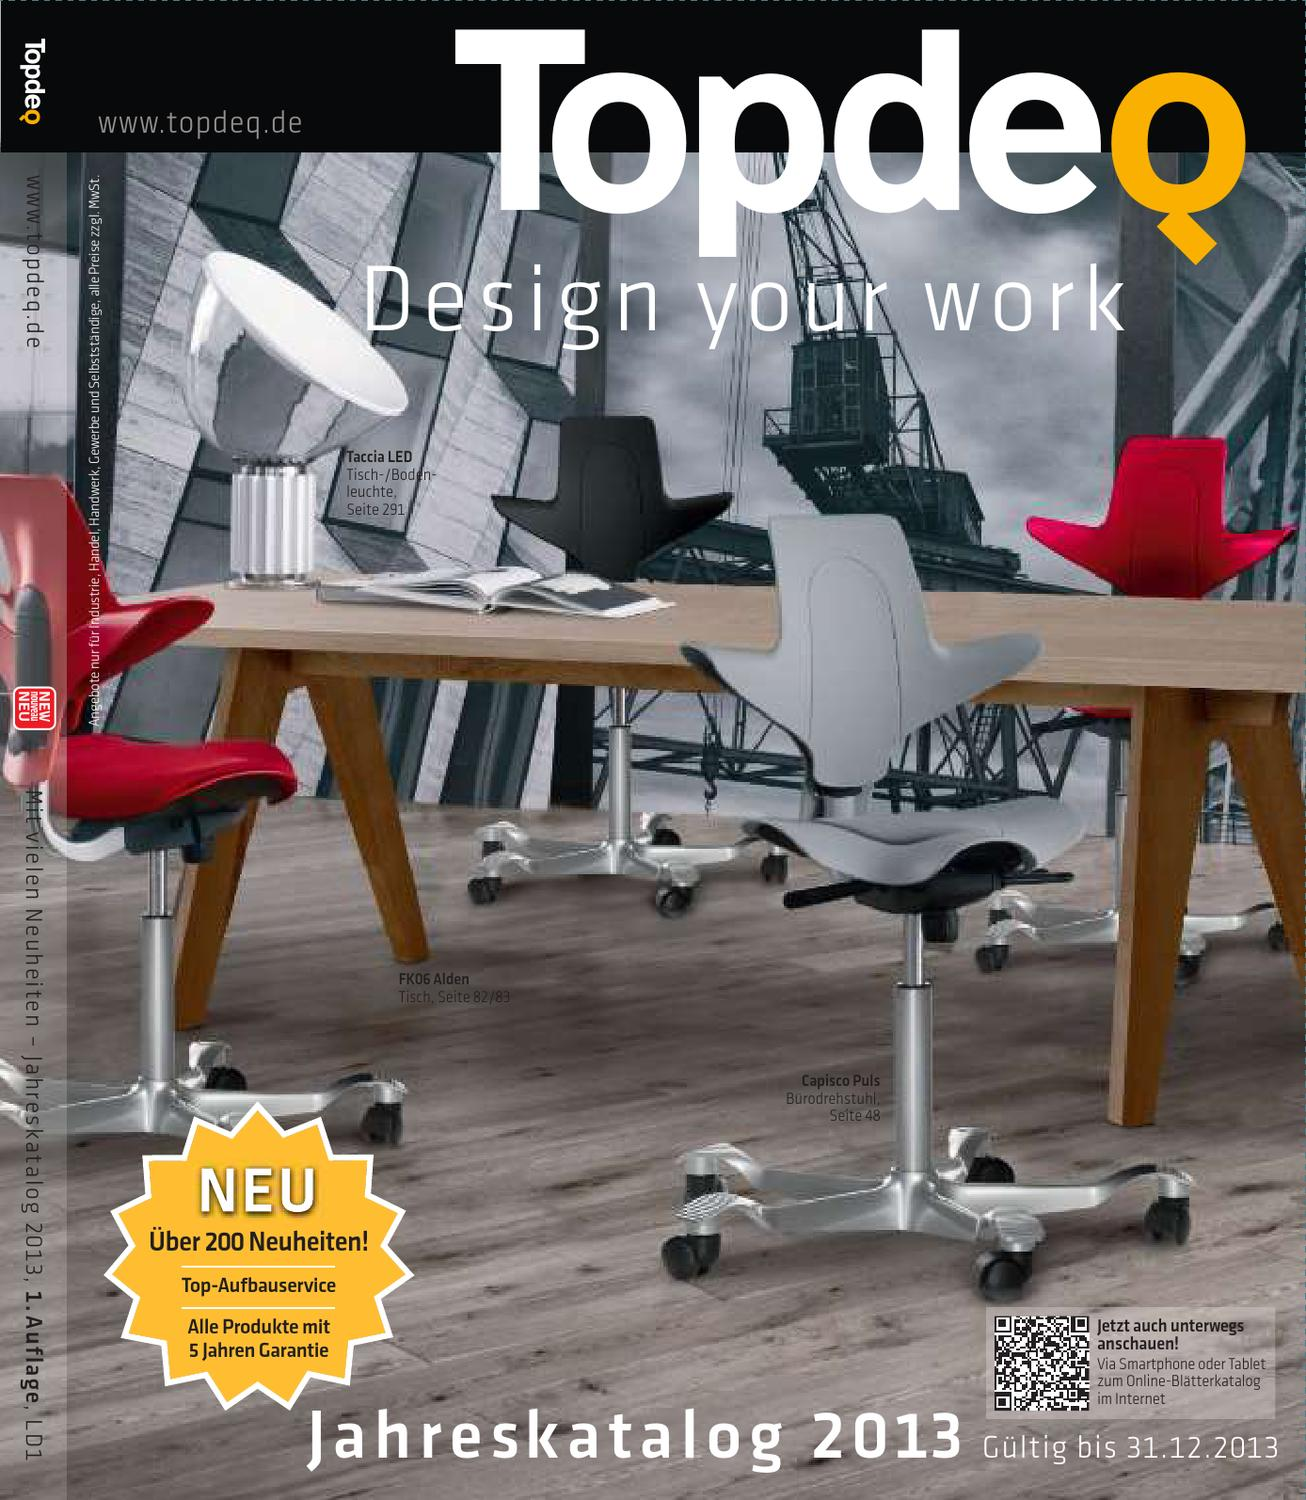 Topdeq Designmöbel Katalog 2013 By Topdeq Design Your Work Issuu